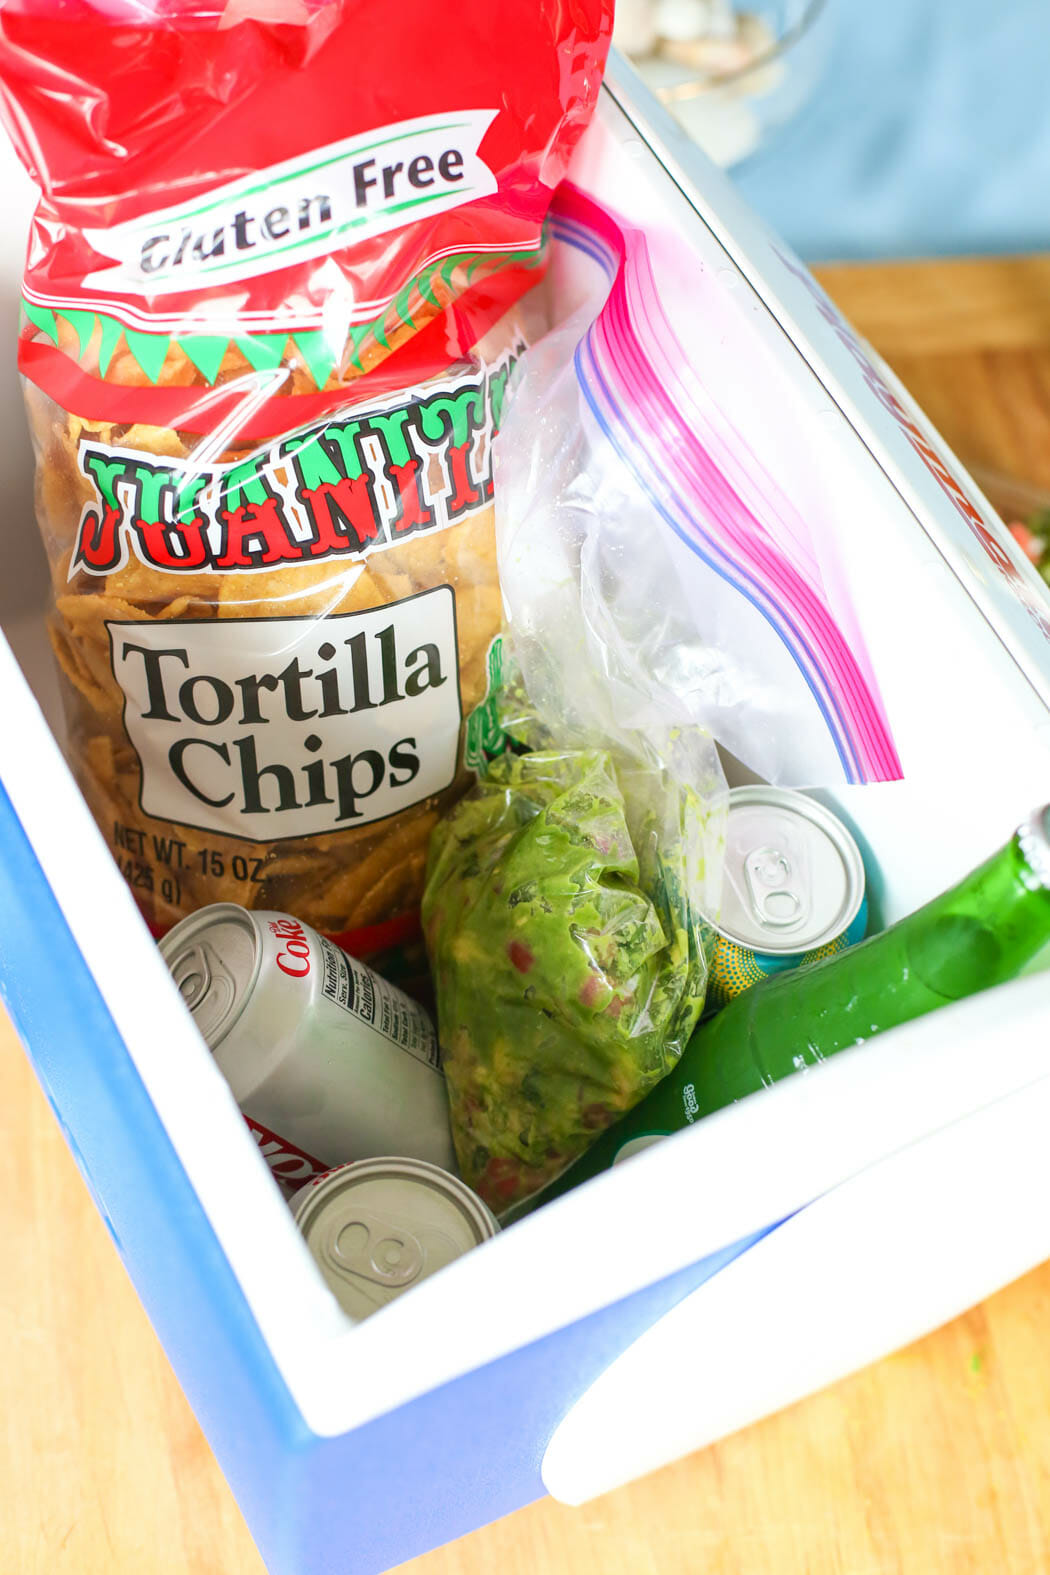 Guacamole chips drinks in cooler